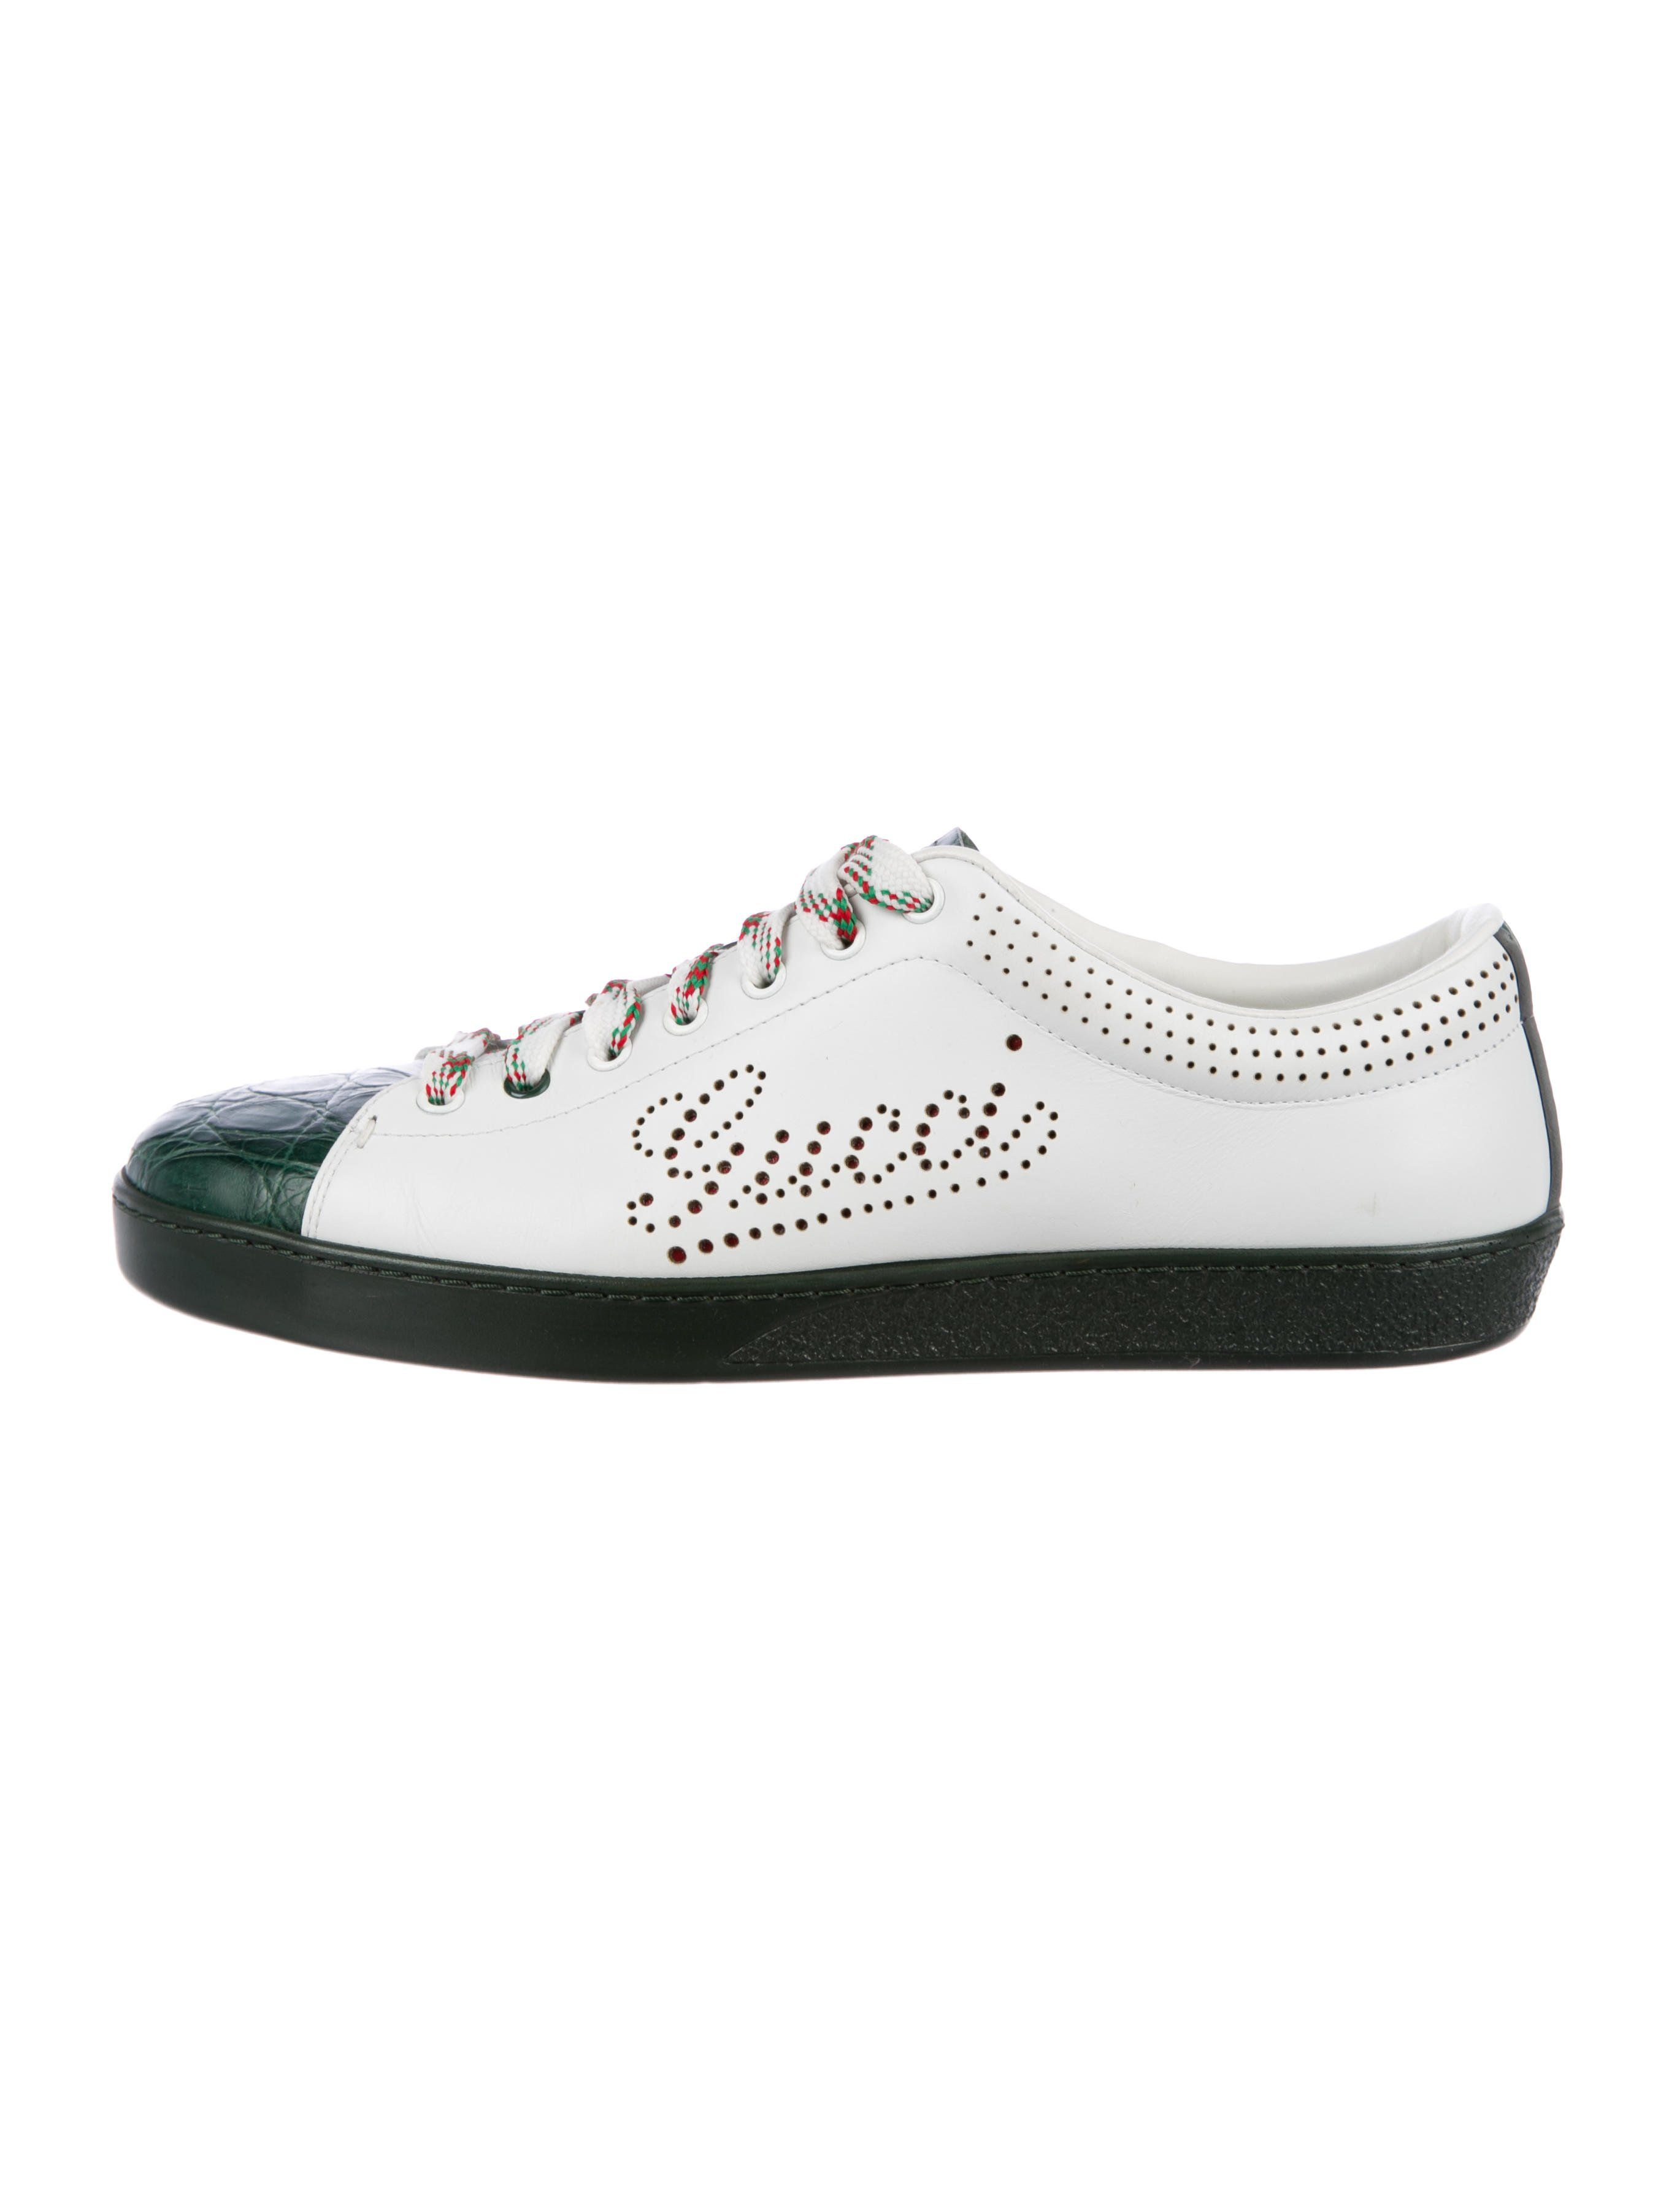 26a052a7b55 Men s white leather Gucci low-top sneakers with green crocodile trim